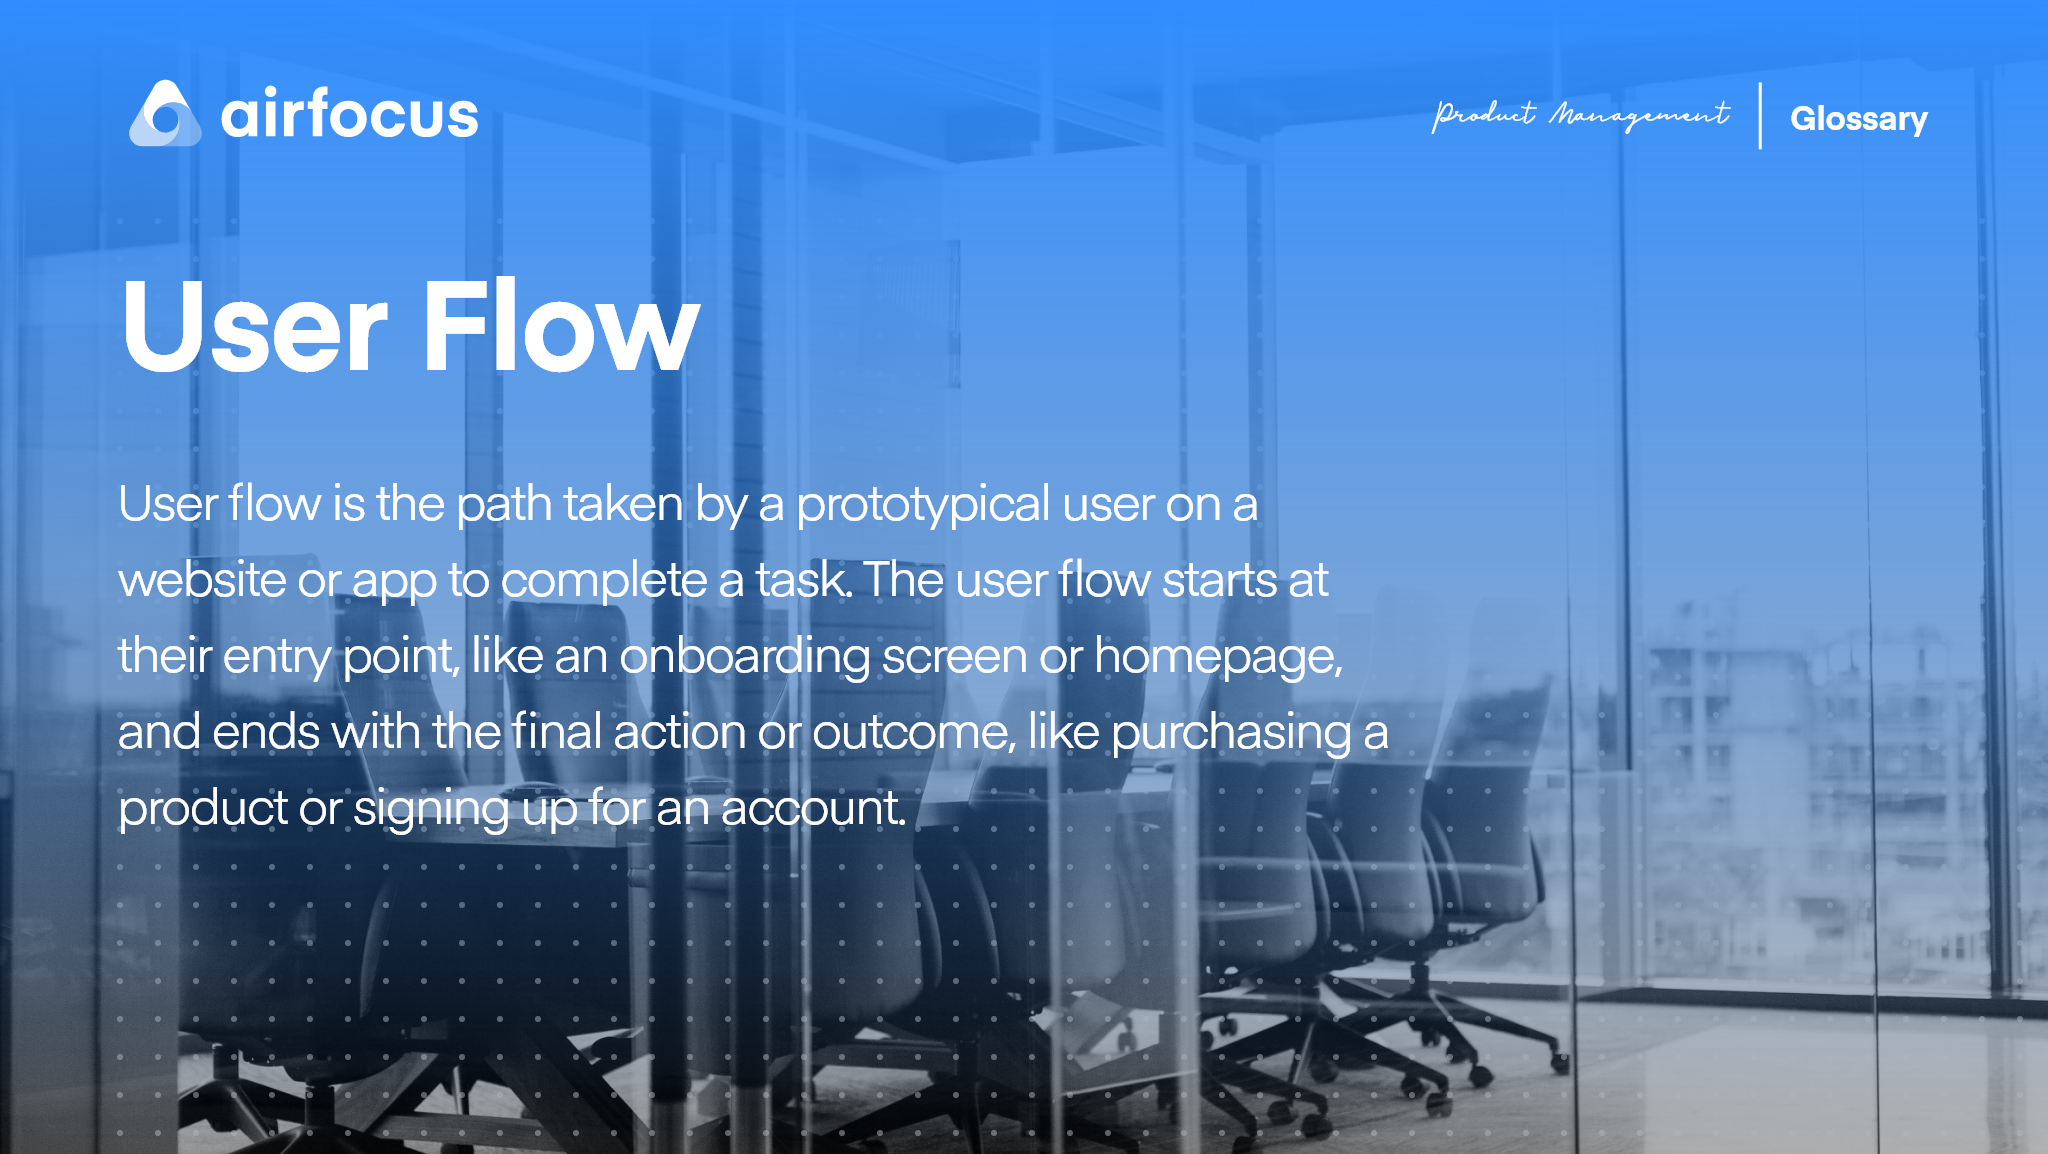 What is User Flow?